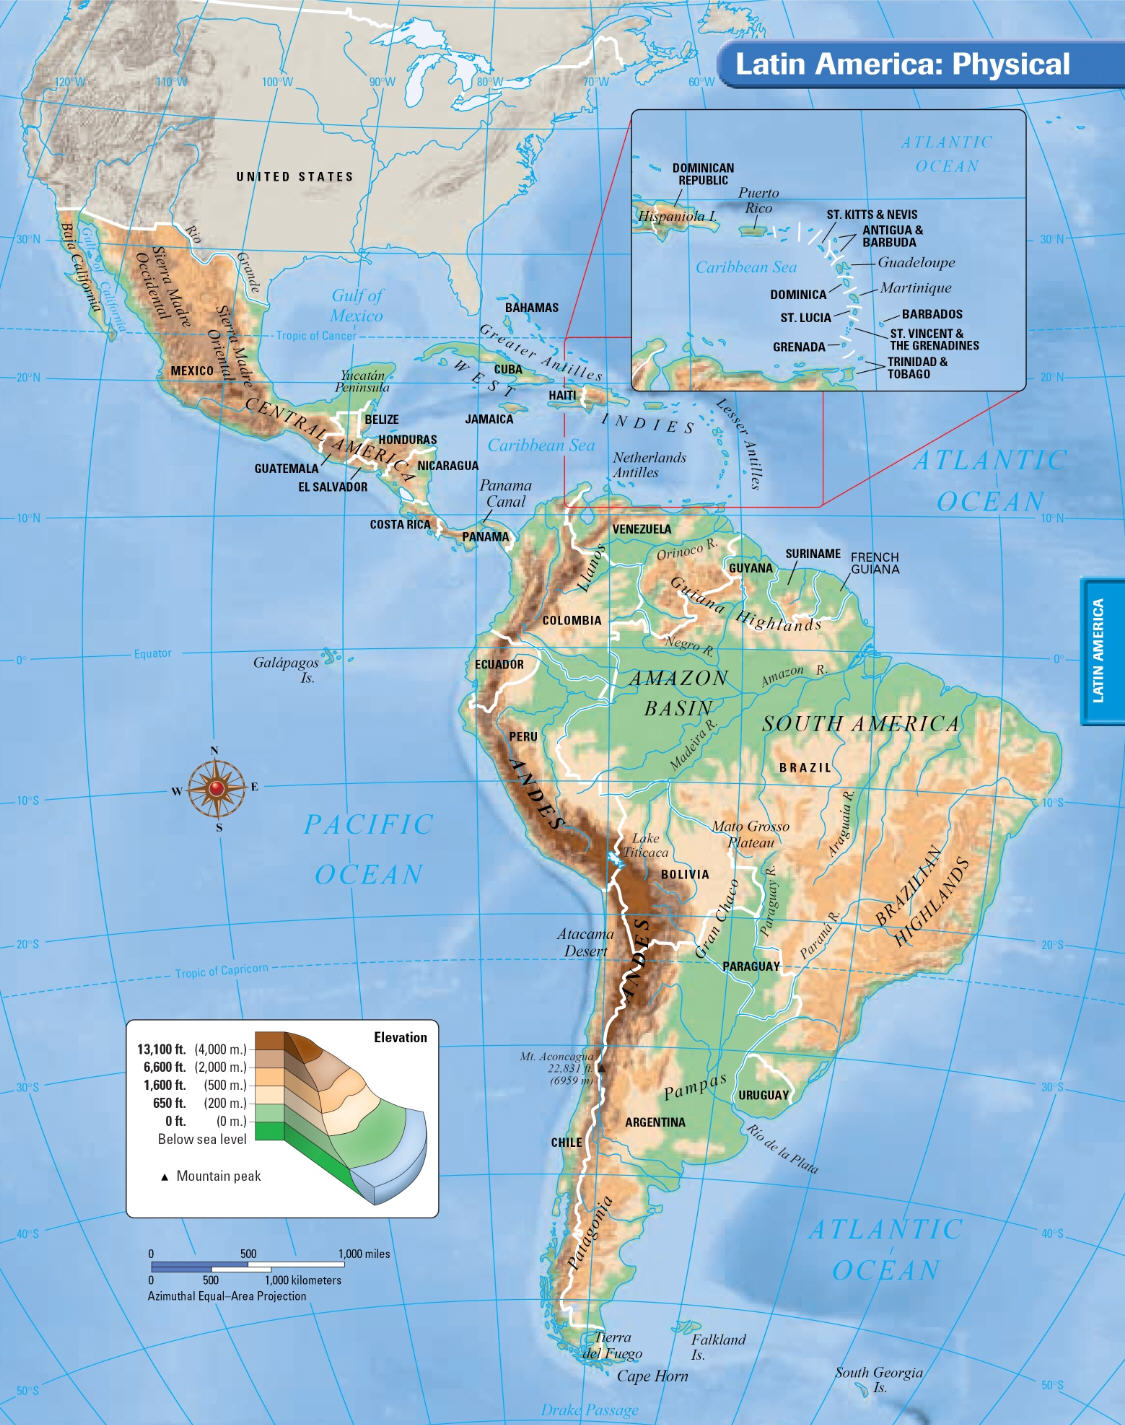 Coach Smith\'s World Geography Class: Latin America Physical Map